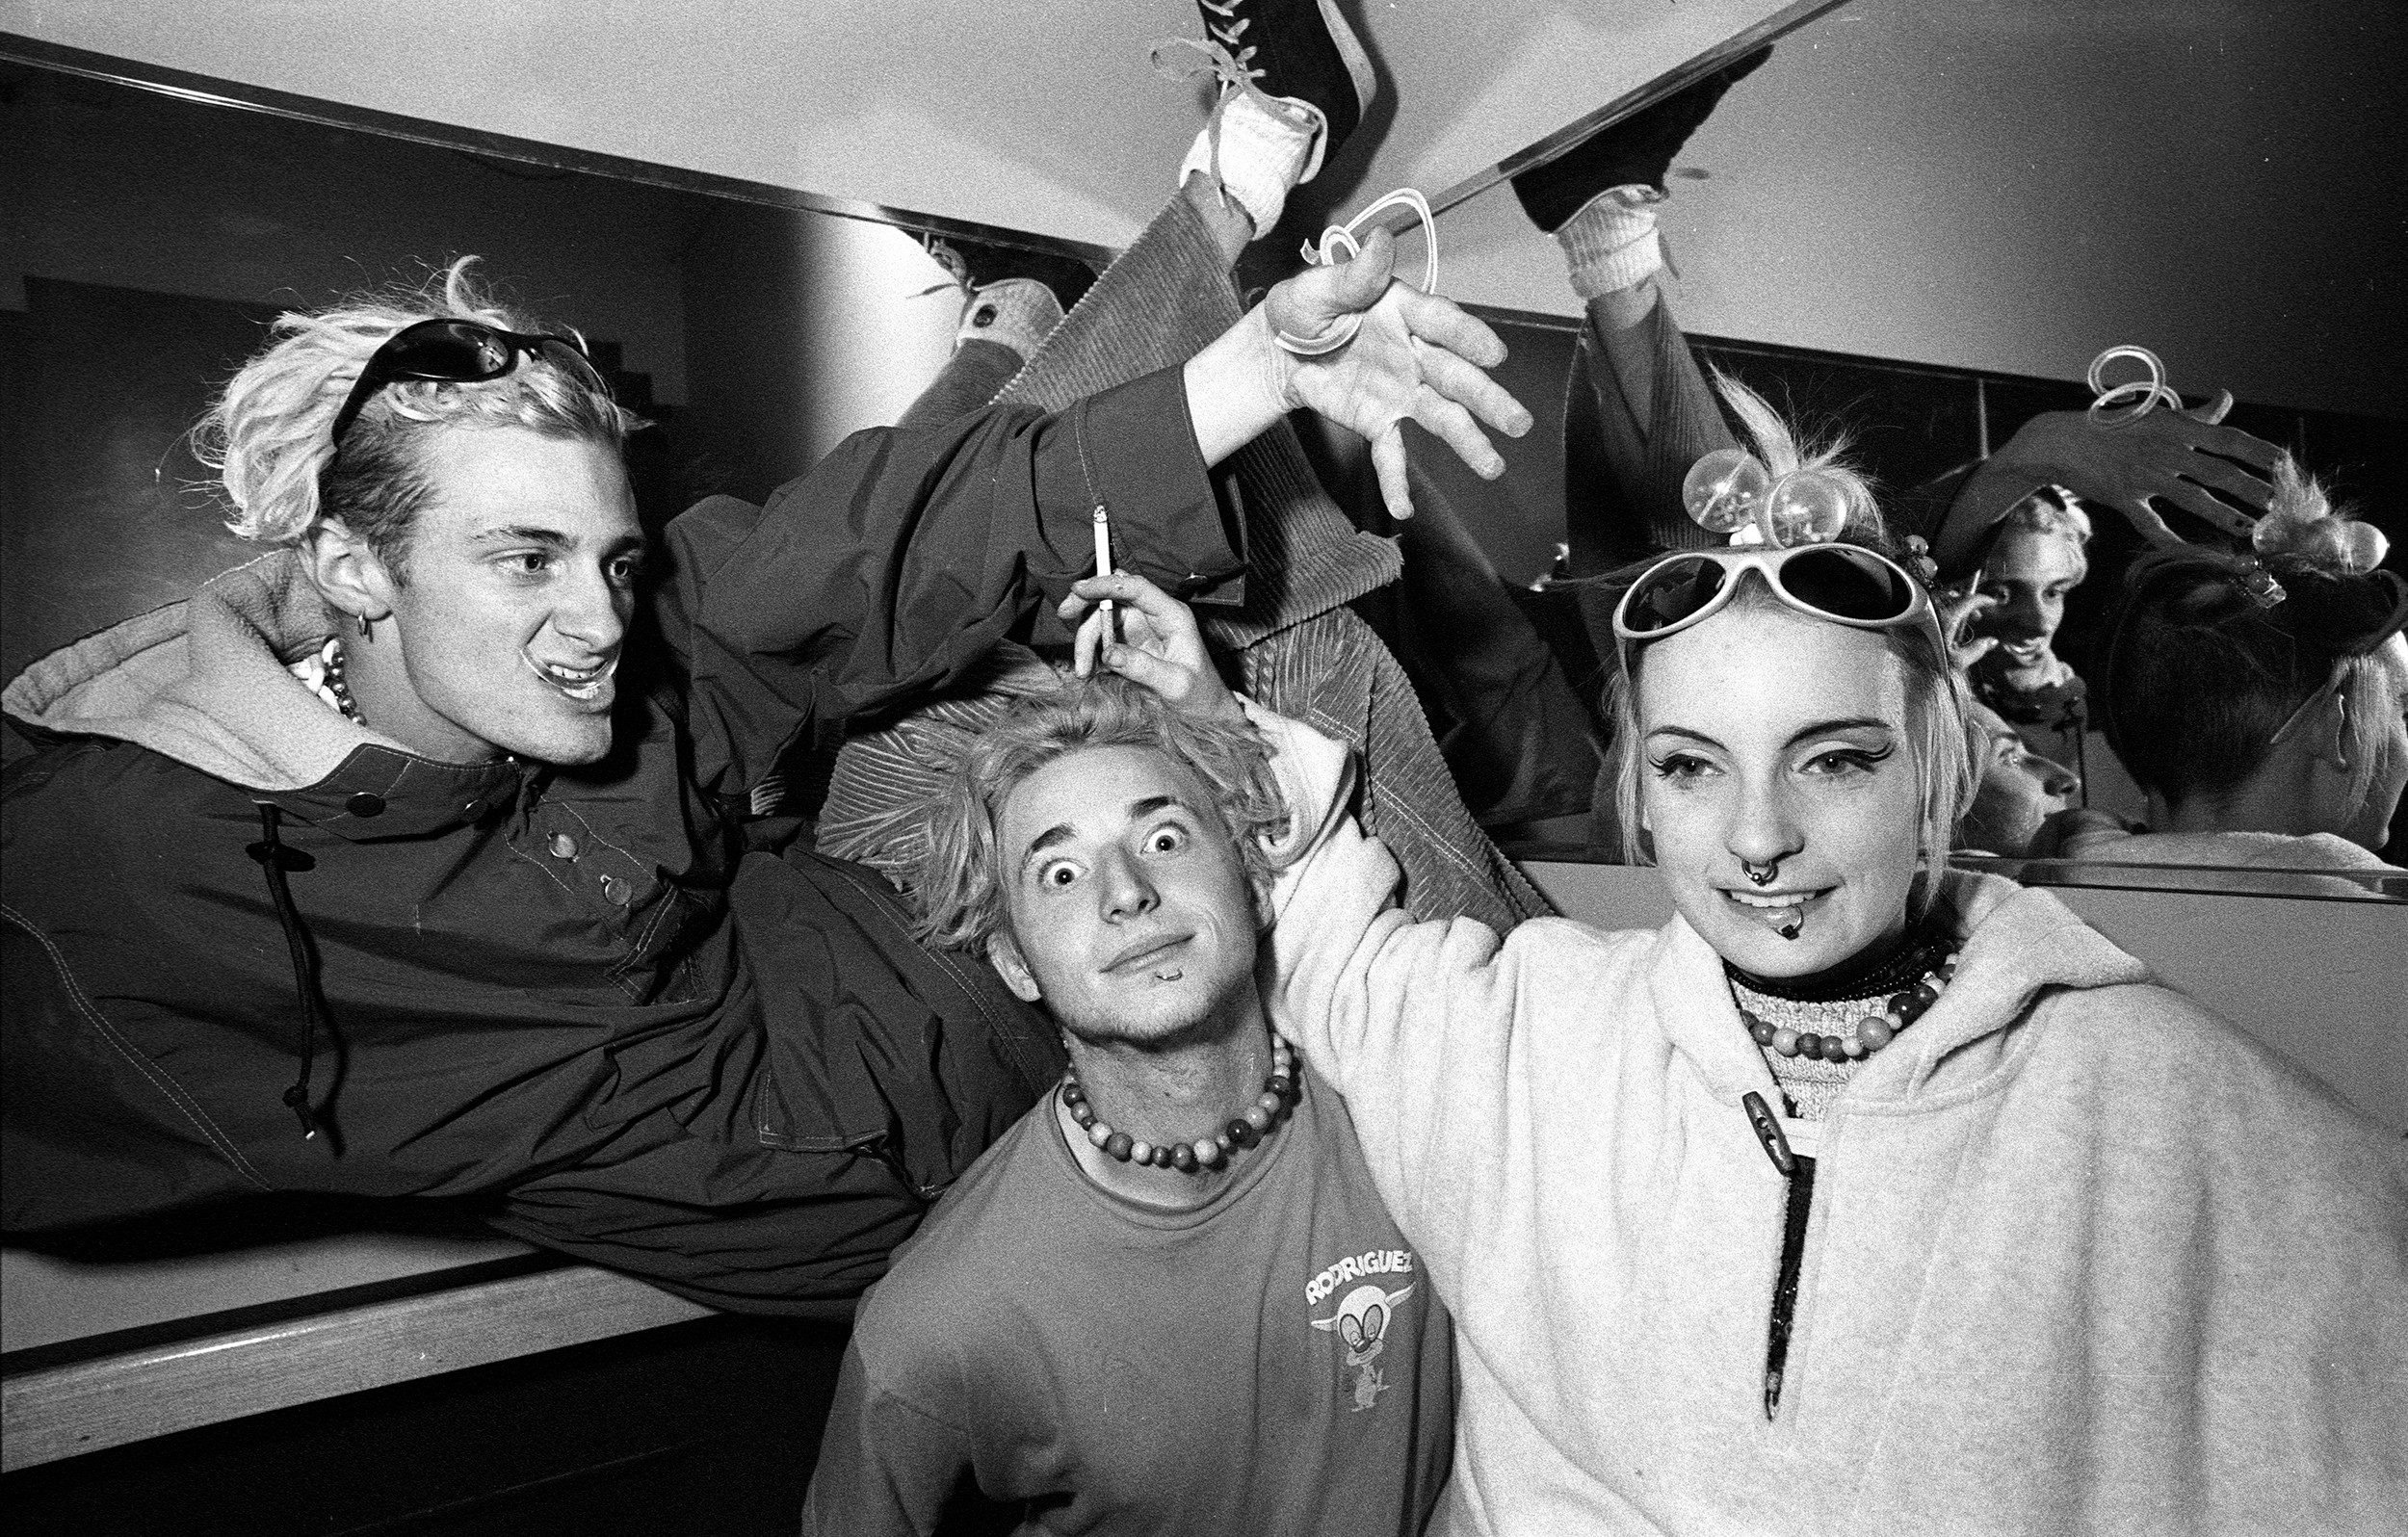 Photos: Rave culture's golden era was all about 'Peace, Love